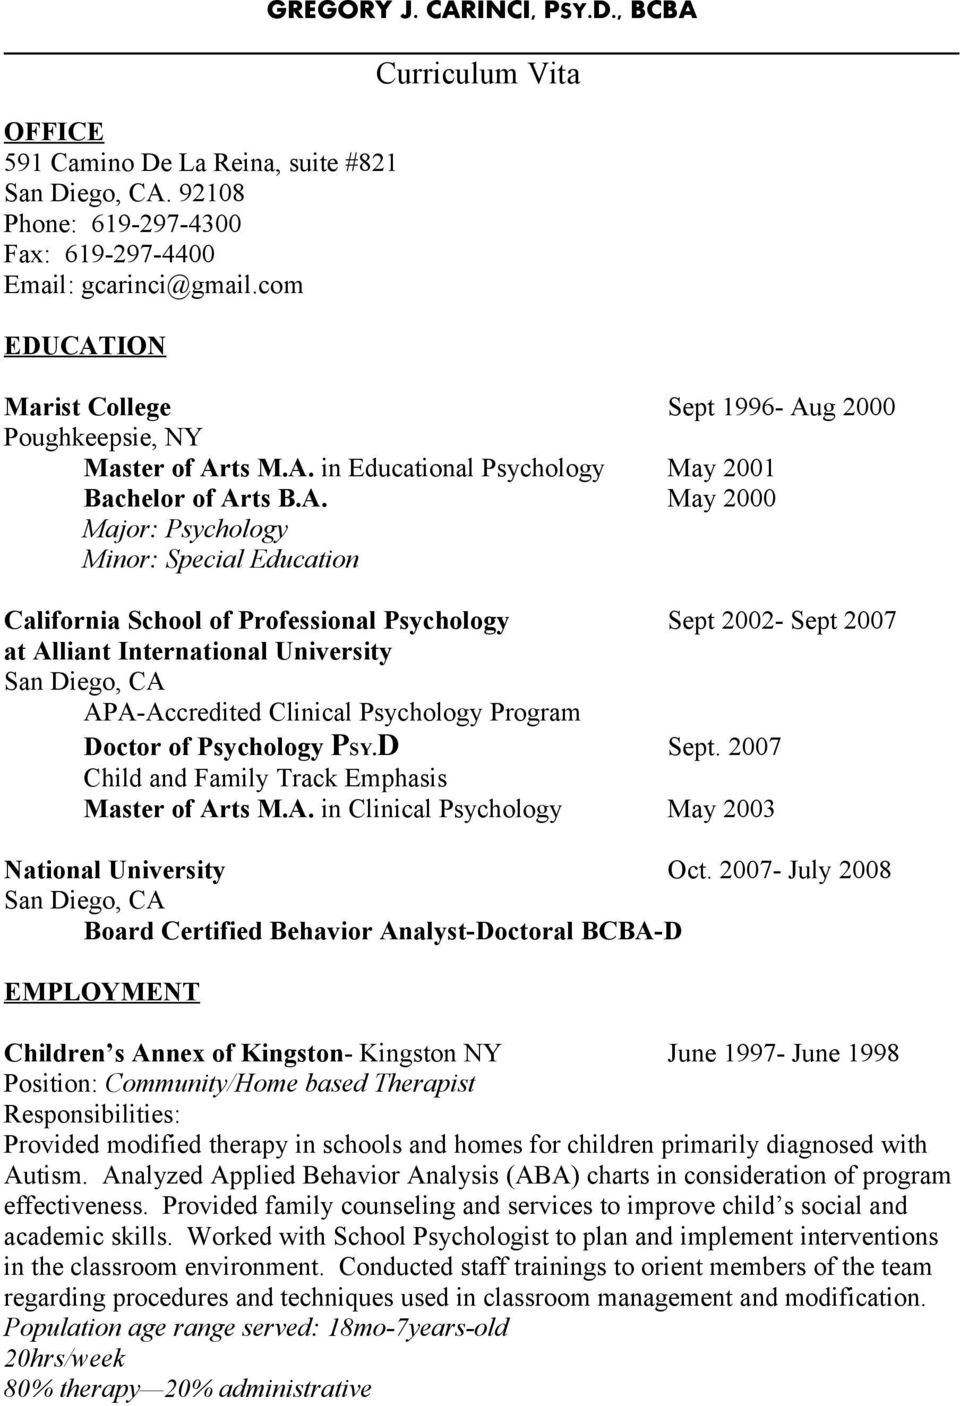 International University San Diego, CA APA-Accredited Clinical Psychology Program Doctor of Psychology PSY.D Sept. 2007 Child and Family Track Emphasis Master of Arts M.A. in Clinical Psychology May 2003 National University Oct.